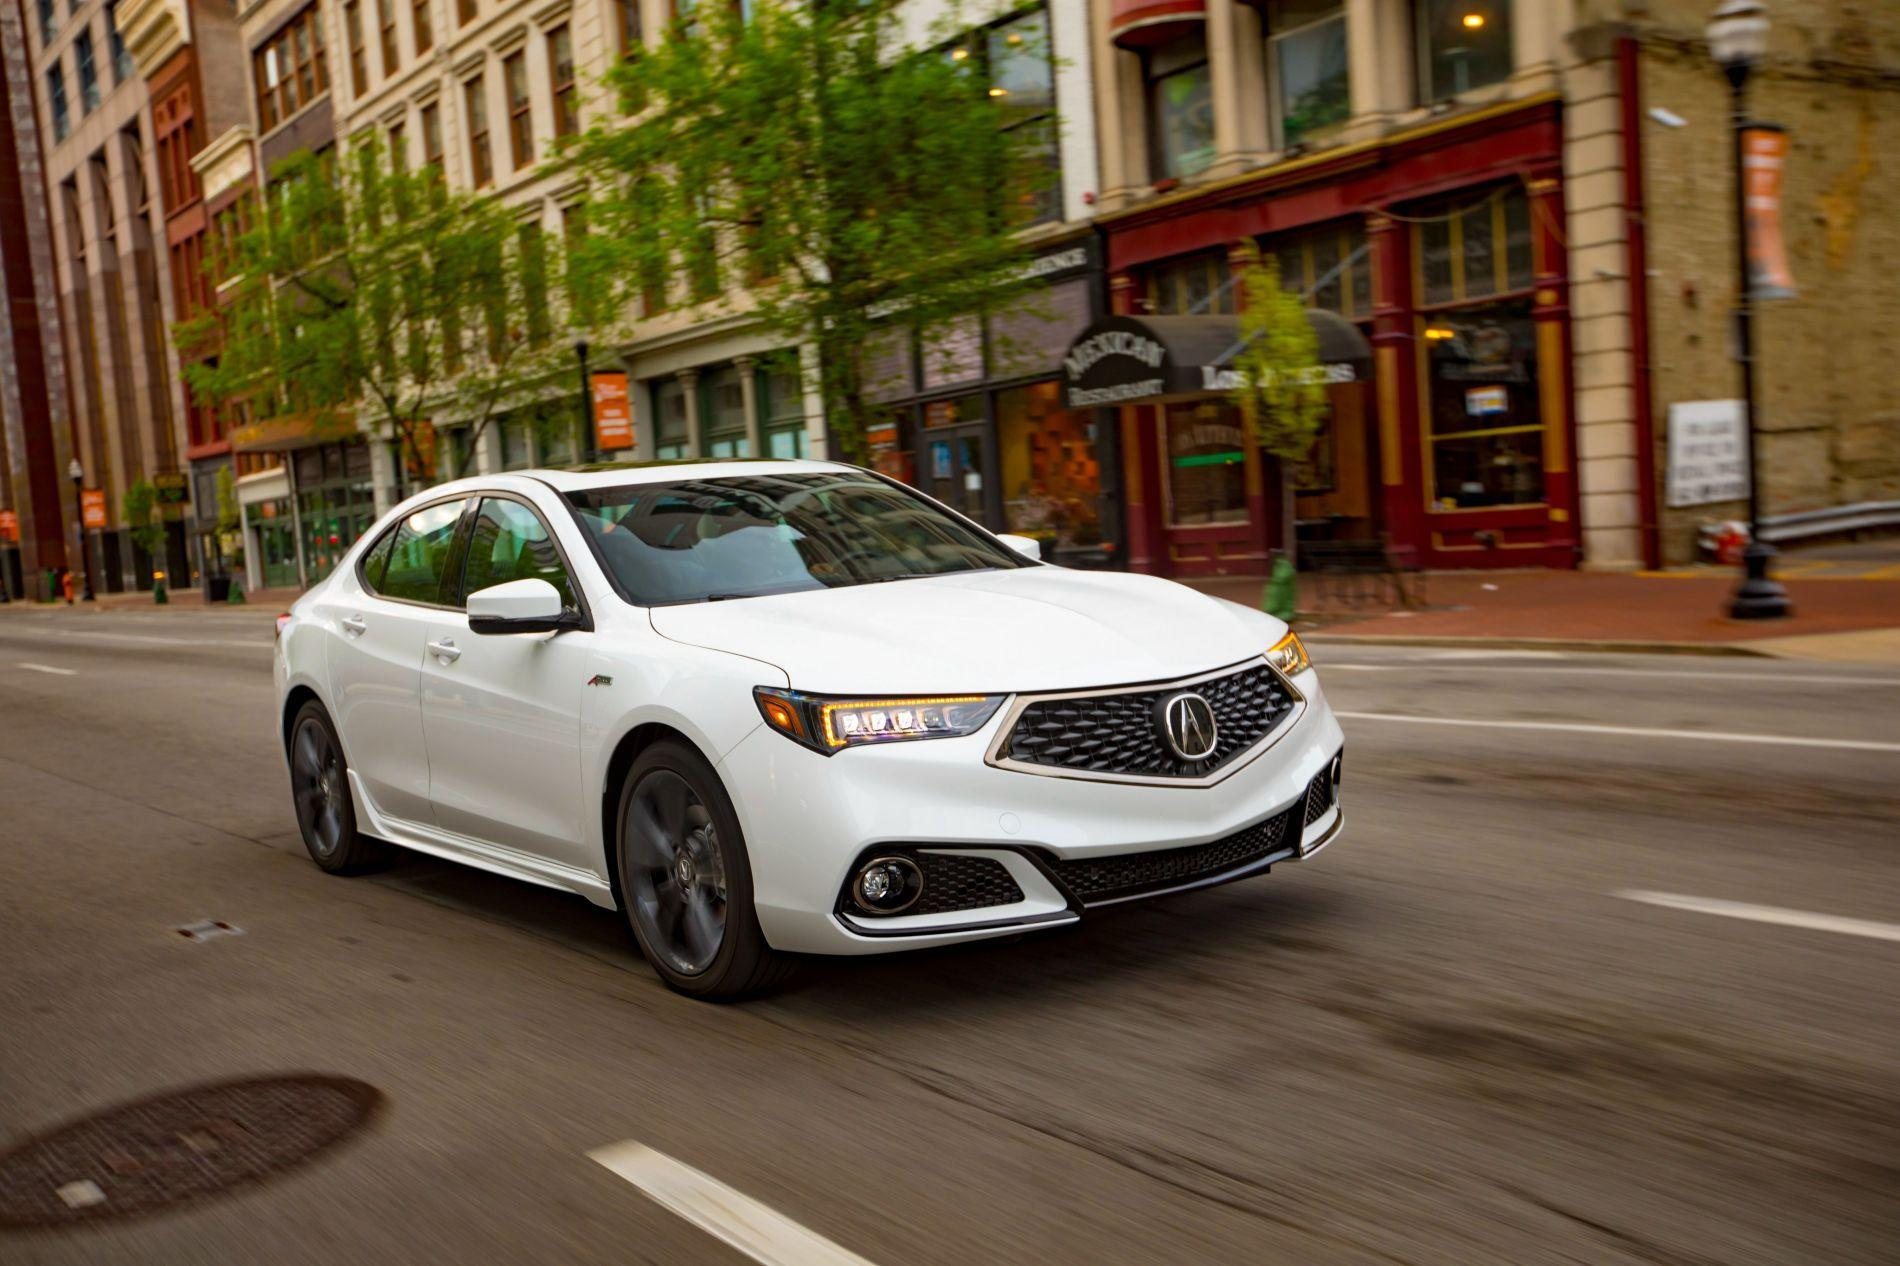 2018 Acura TLX Wallpaper #1412 - Carscool.net